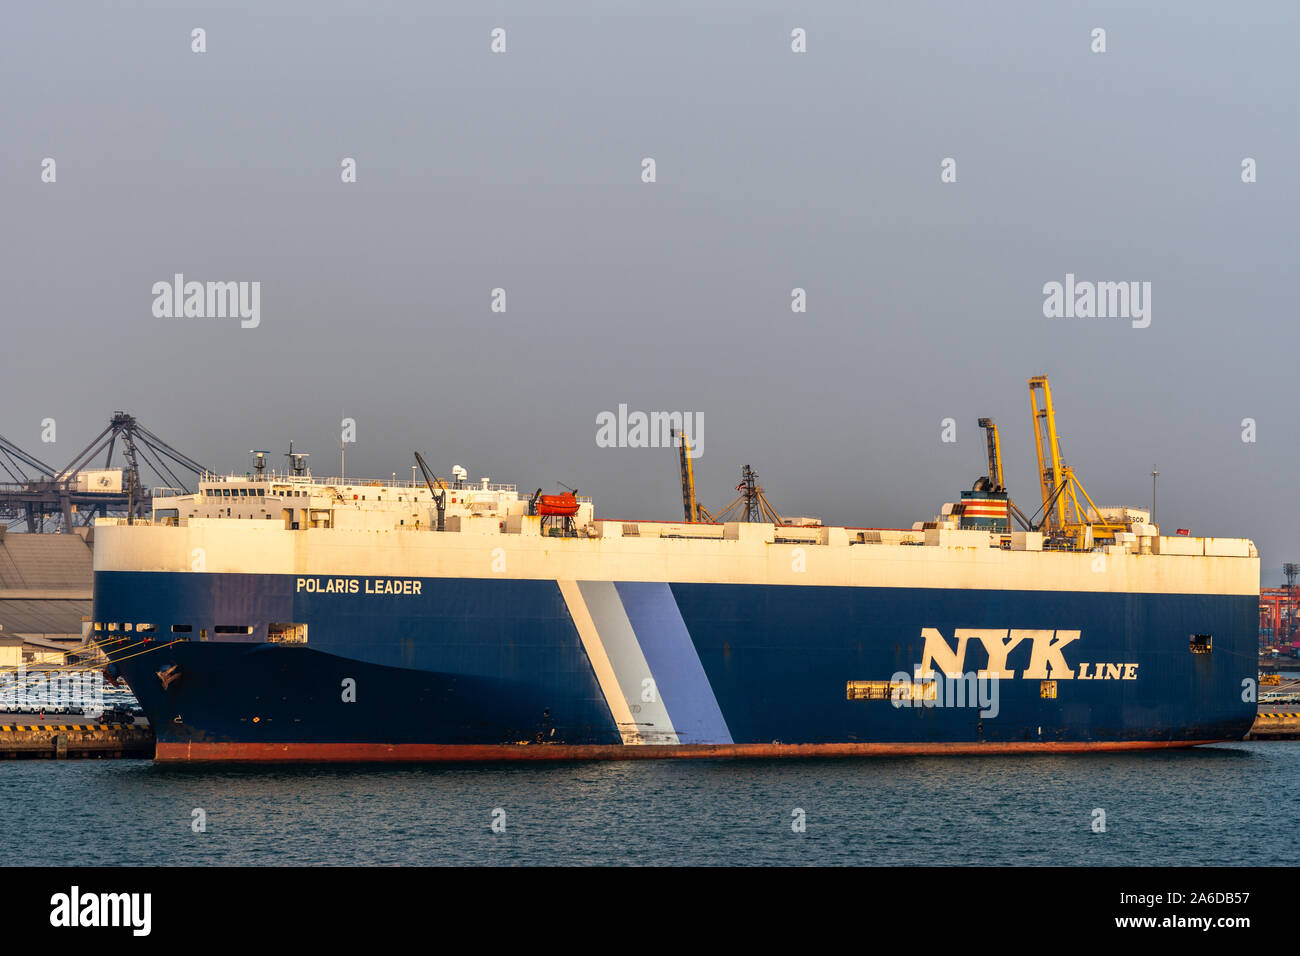 Laem Chabang seaport, Thailand - March 17, 2019: Closeup of Large blue-white NYKline vehicle carrier, Polaris Leader, flagged in Singapore, docked und Stock Photo